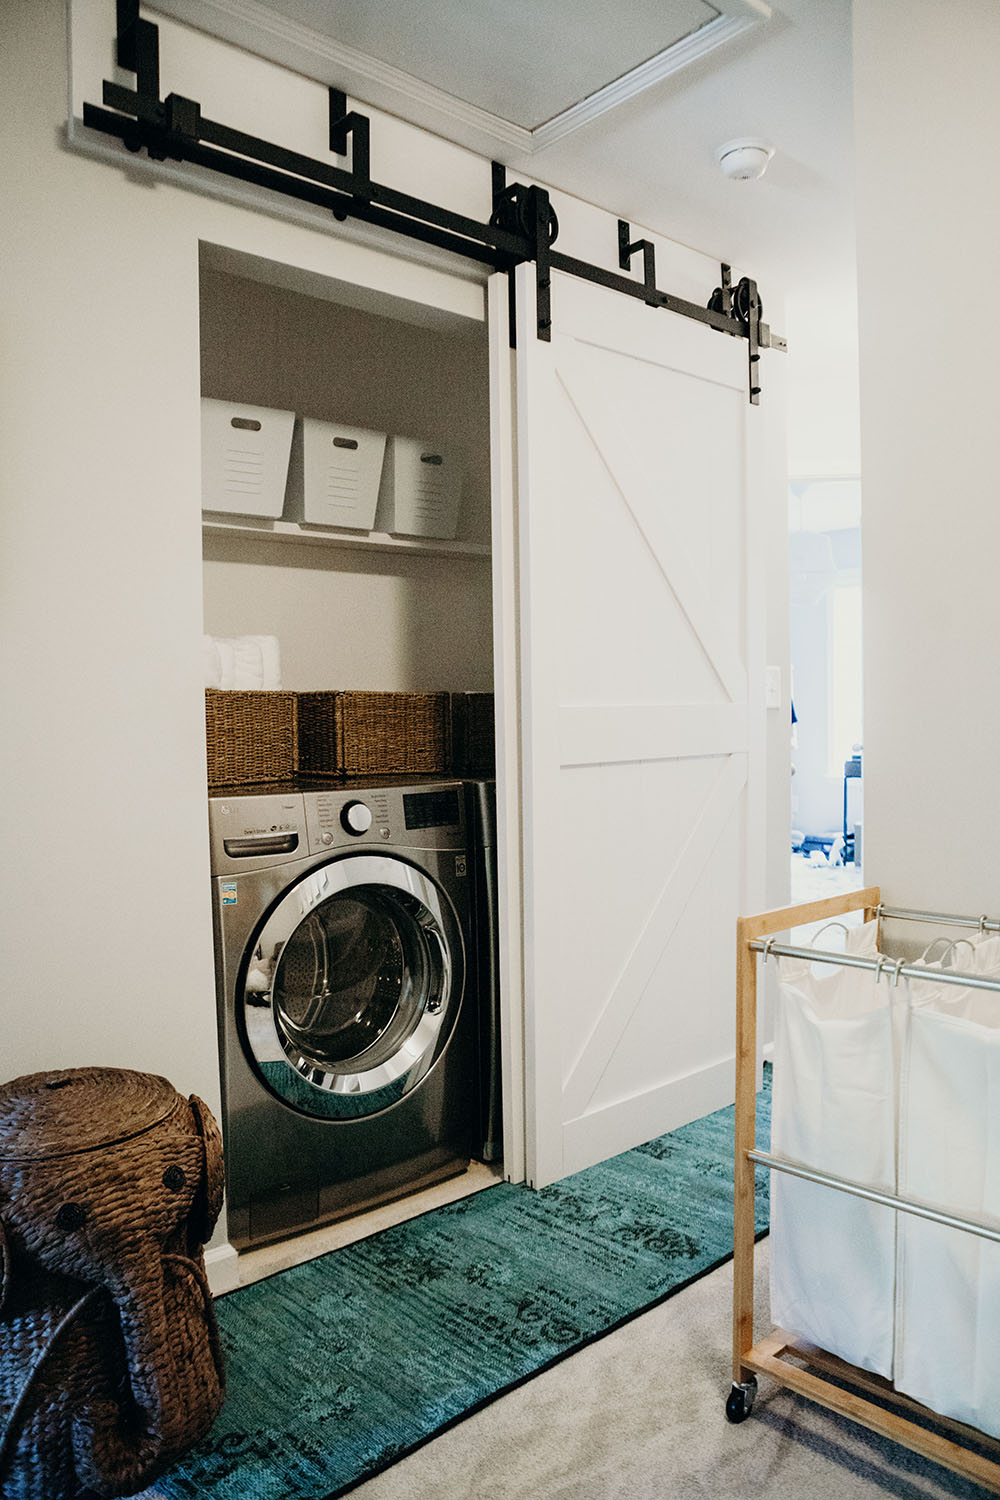 A laundry room closet with a front load washing machine.